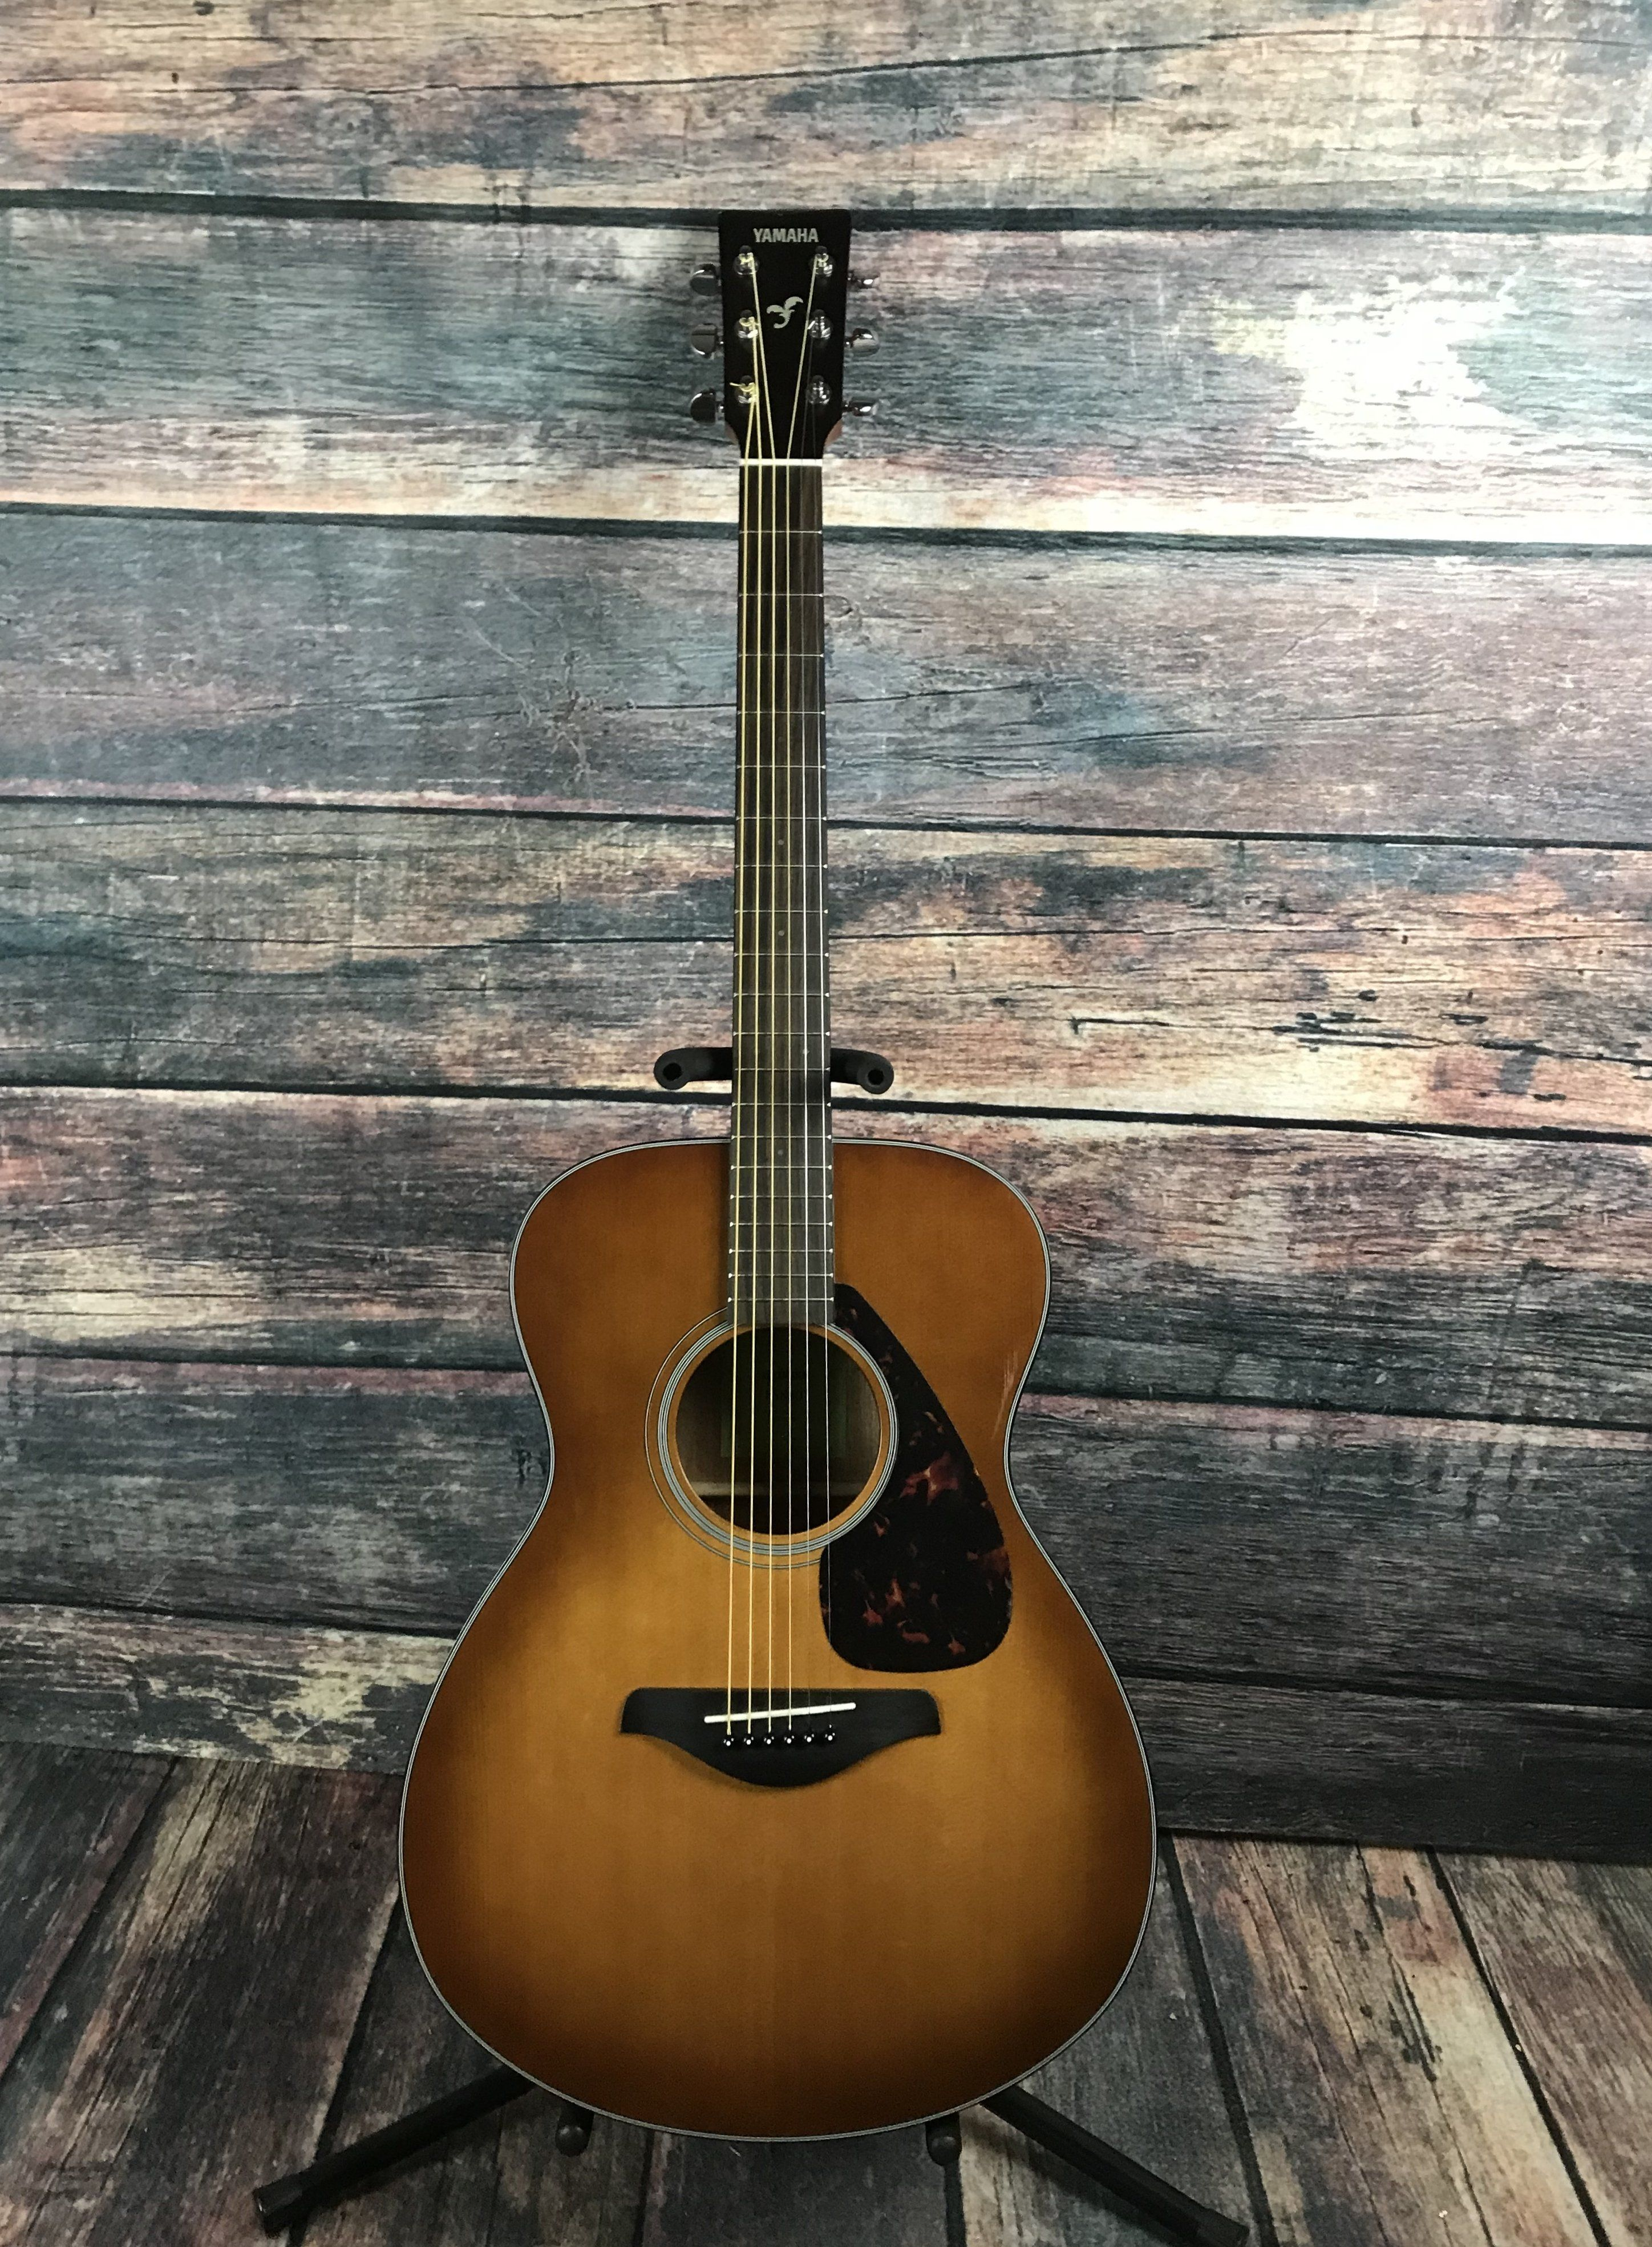 Used Yamaha Fs 800 Small Body Acoustic Guitar With Bag Yamaha Guitar Guitar Acoustic Electric